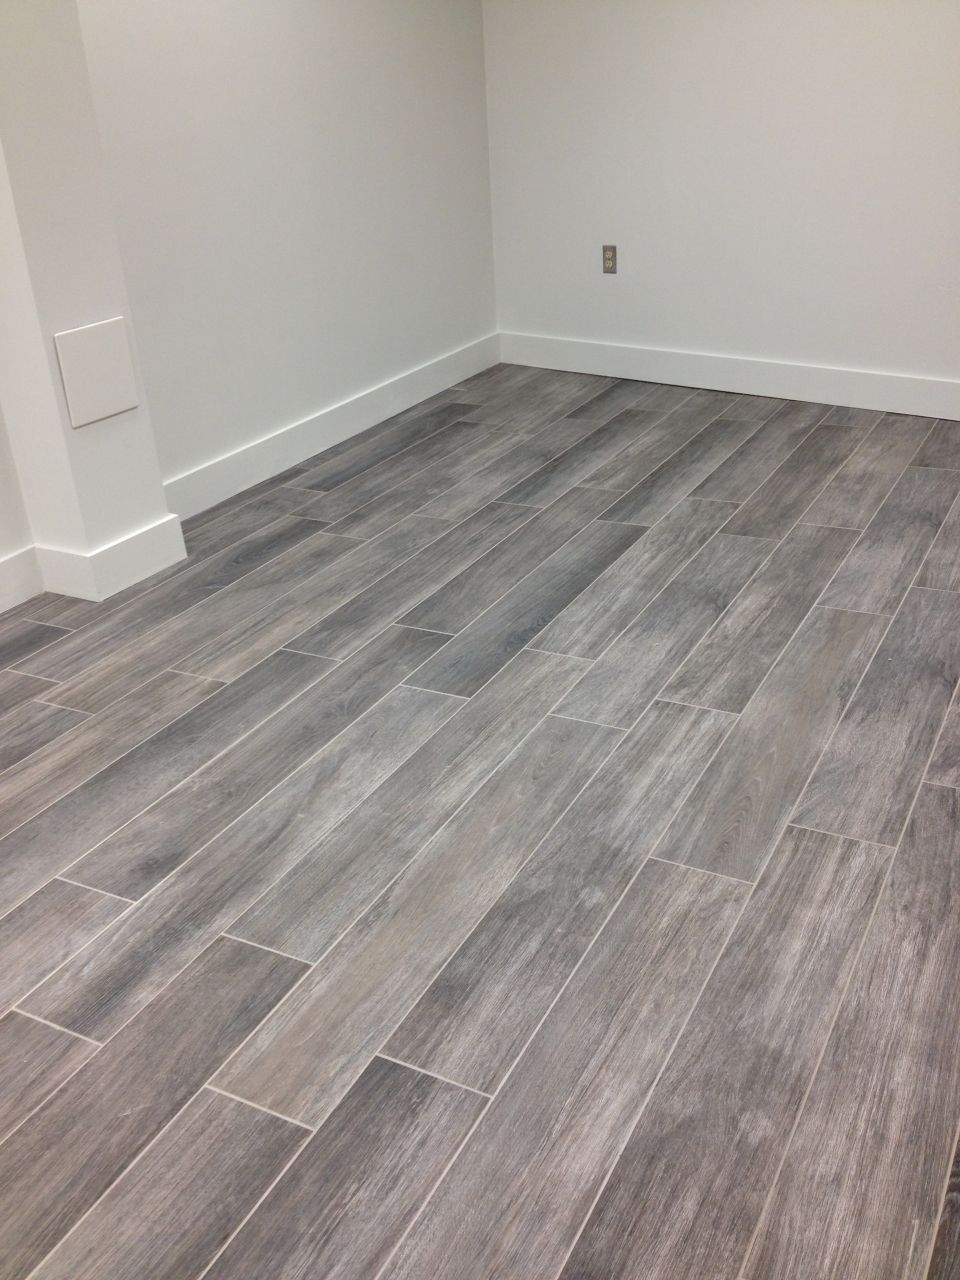 Gray Wood Tile Floor No3lcd6n8 Homes Pinterest Wood Tile